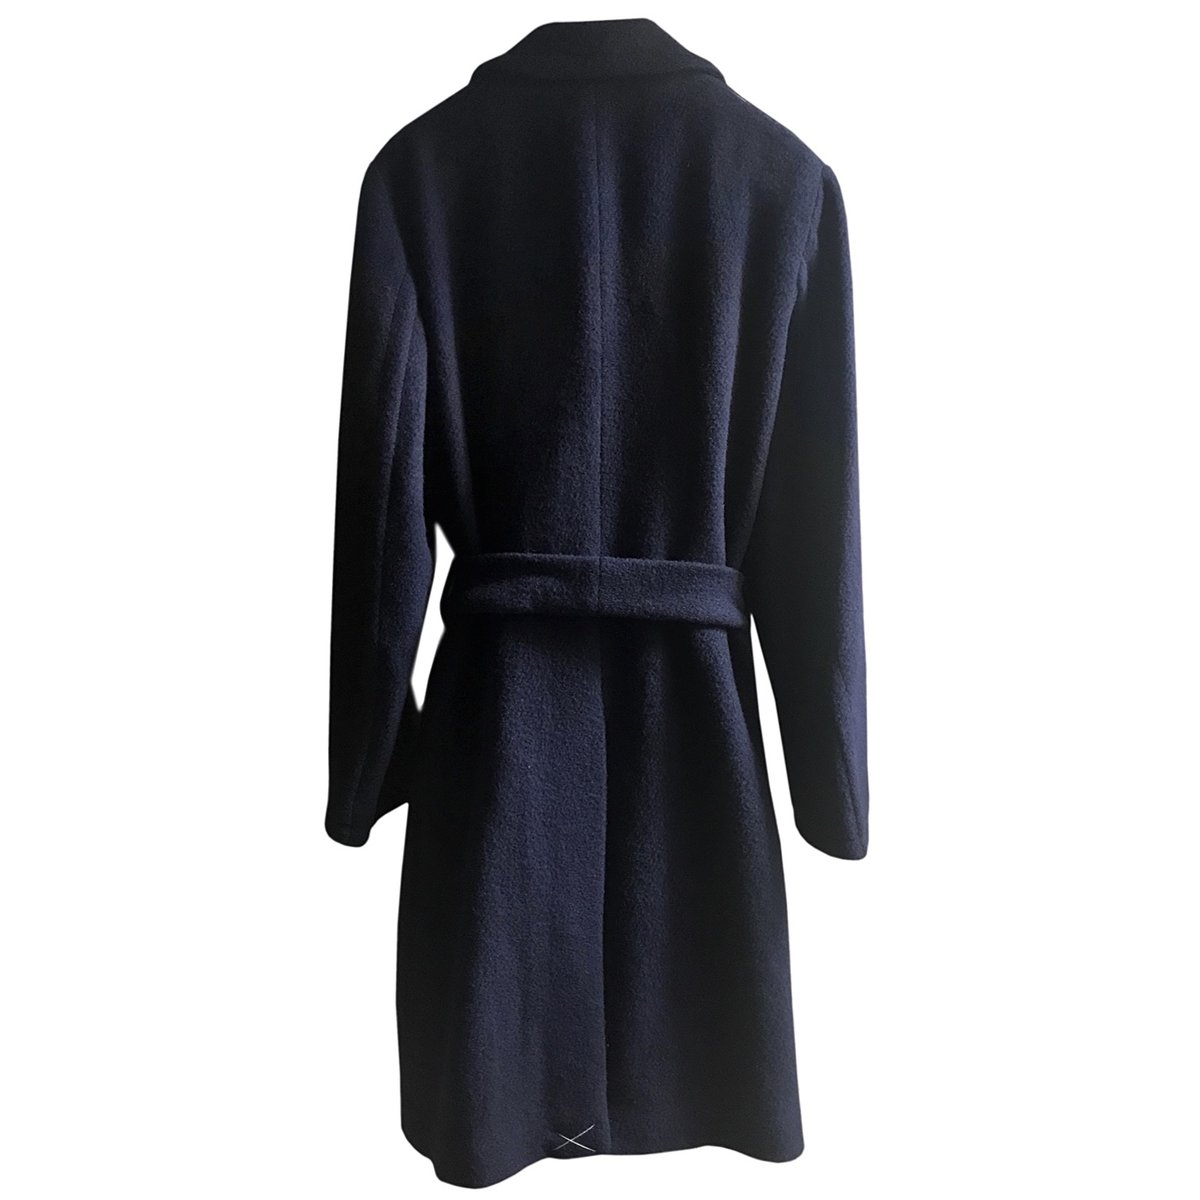 MP Massimo Piombo Double Breasted Wool Coat back.jpg